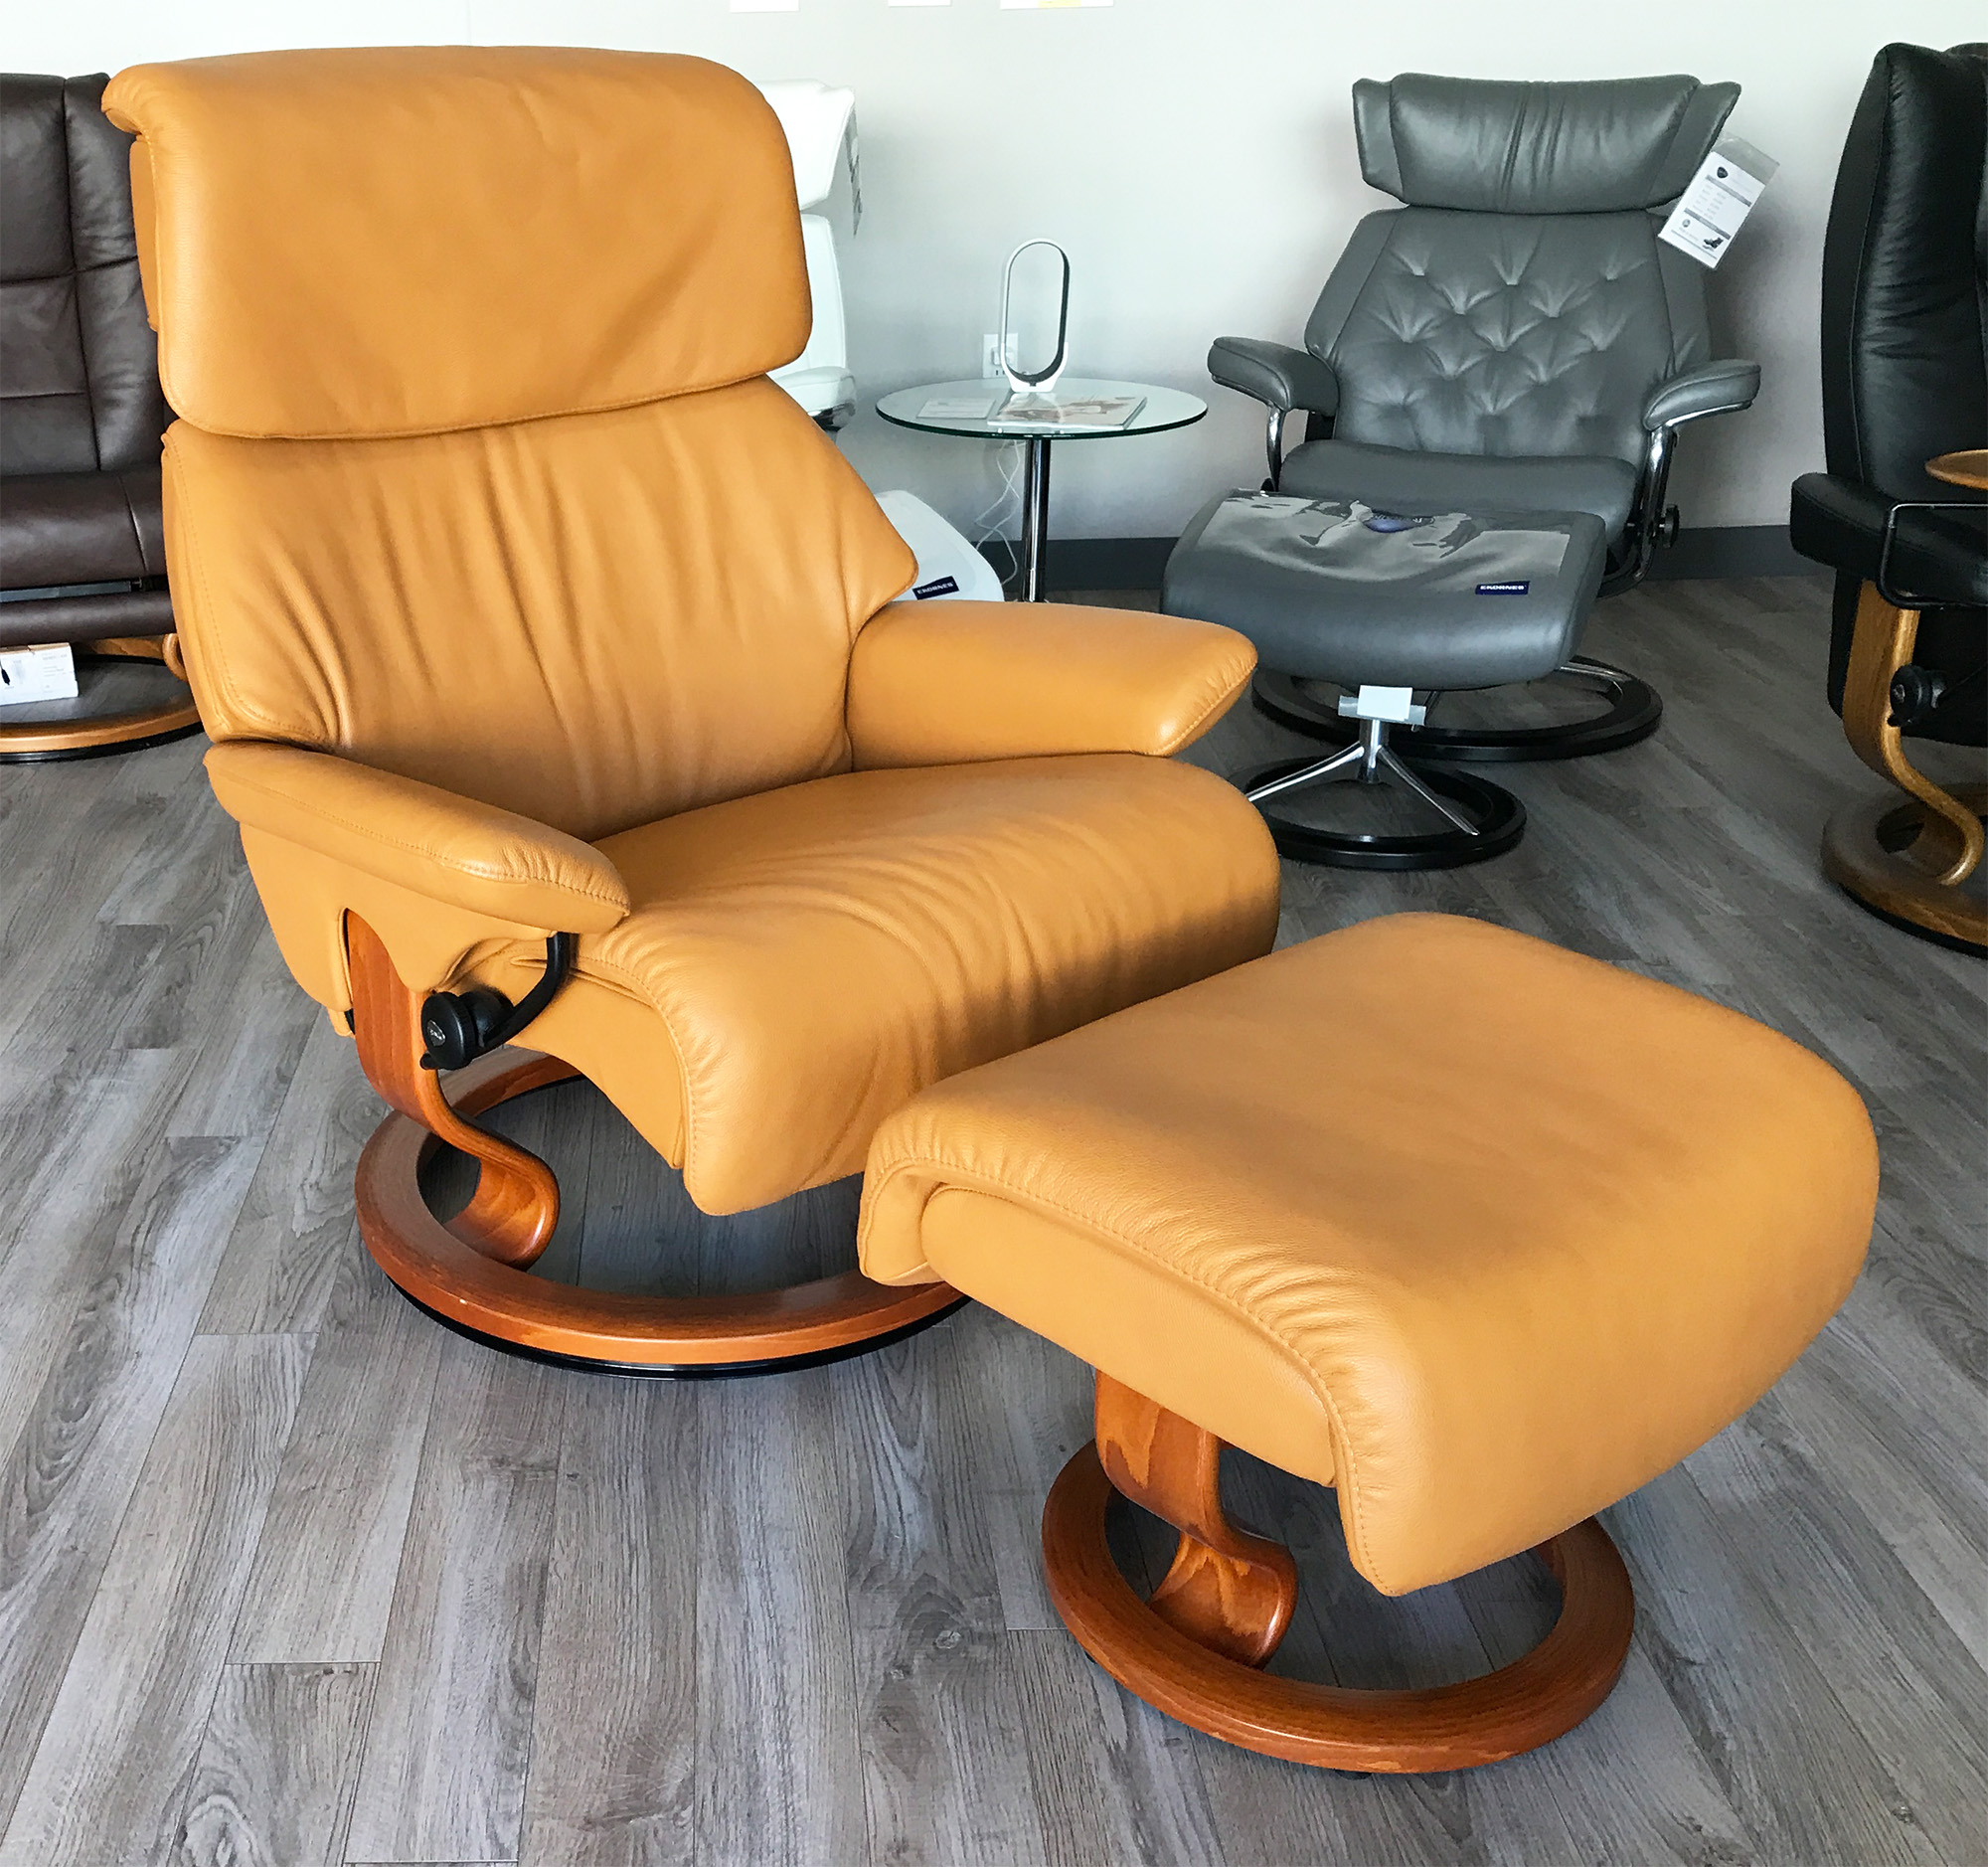 Stressless Spirit Large Dream Cori Tan Leather Recliner Chair By Ekornes